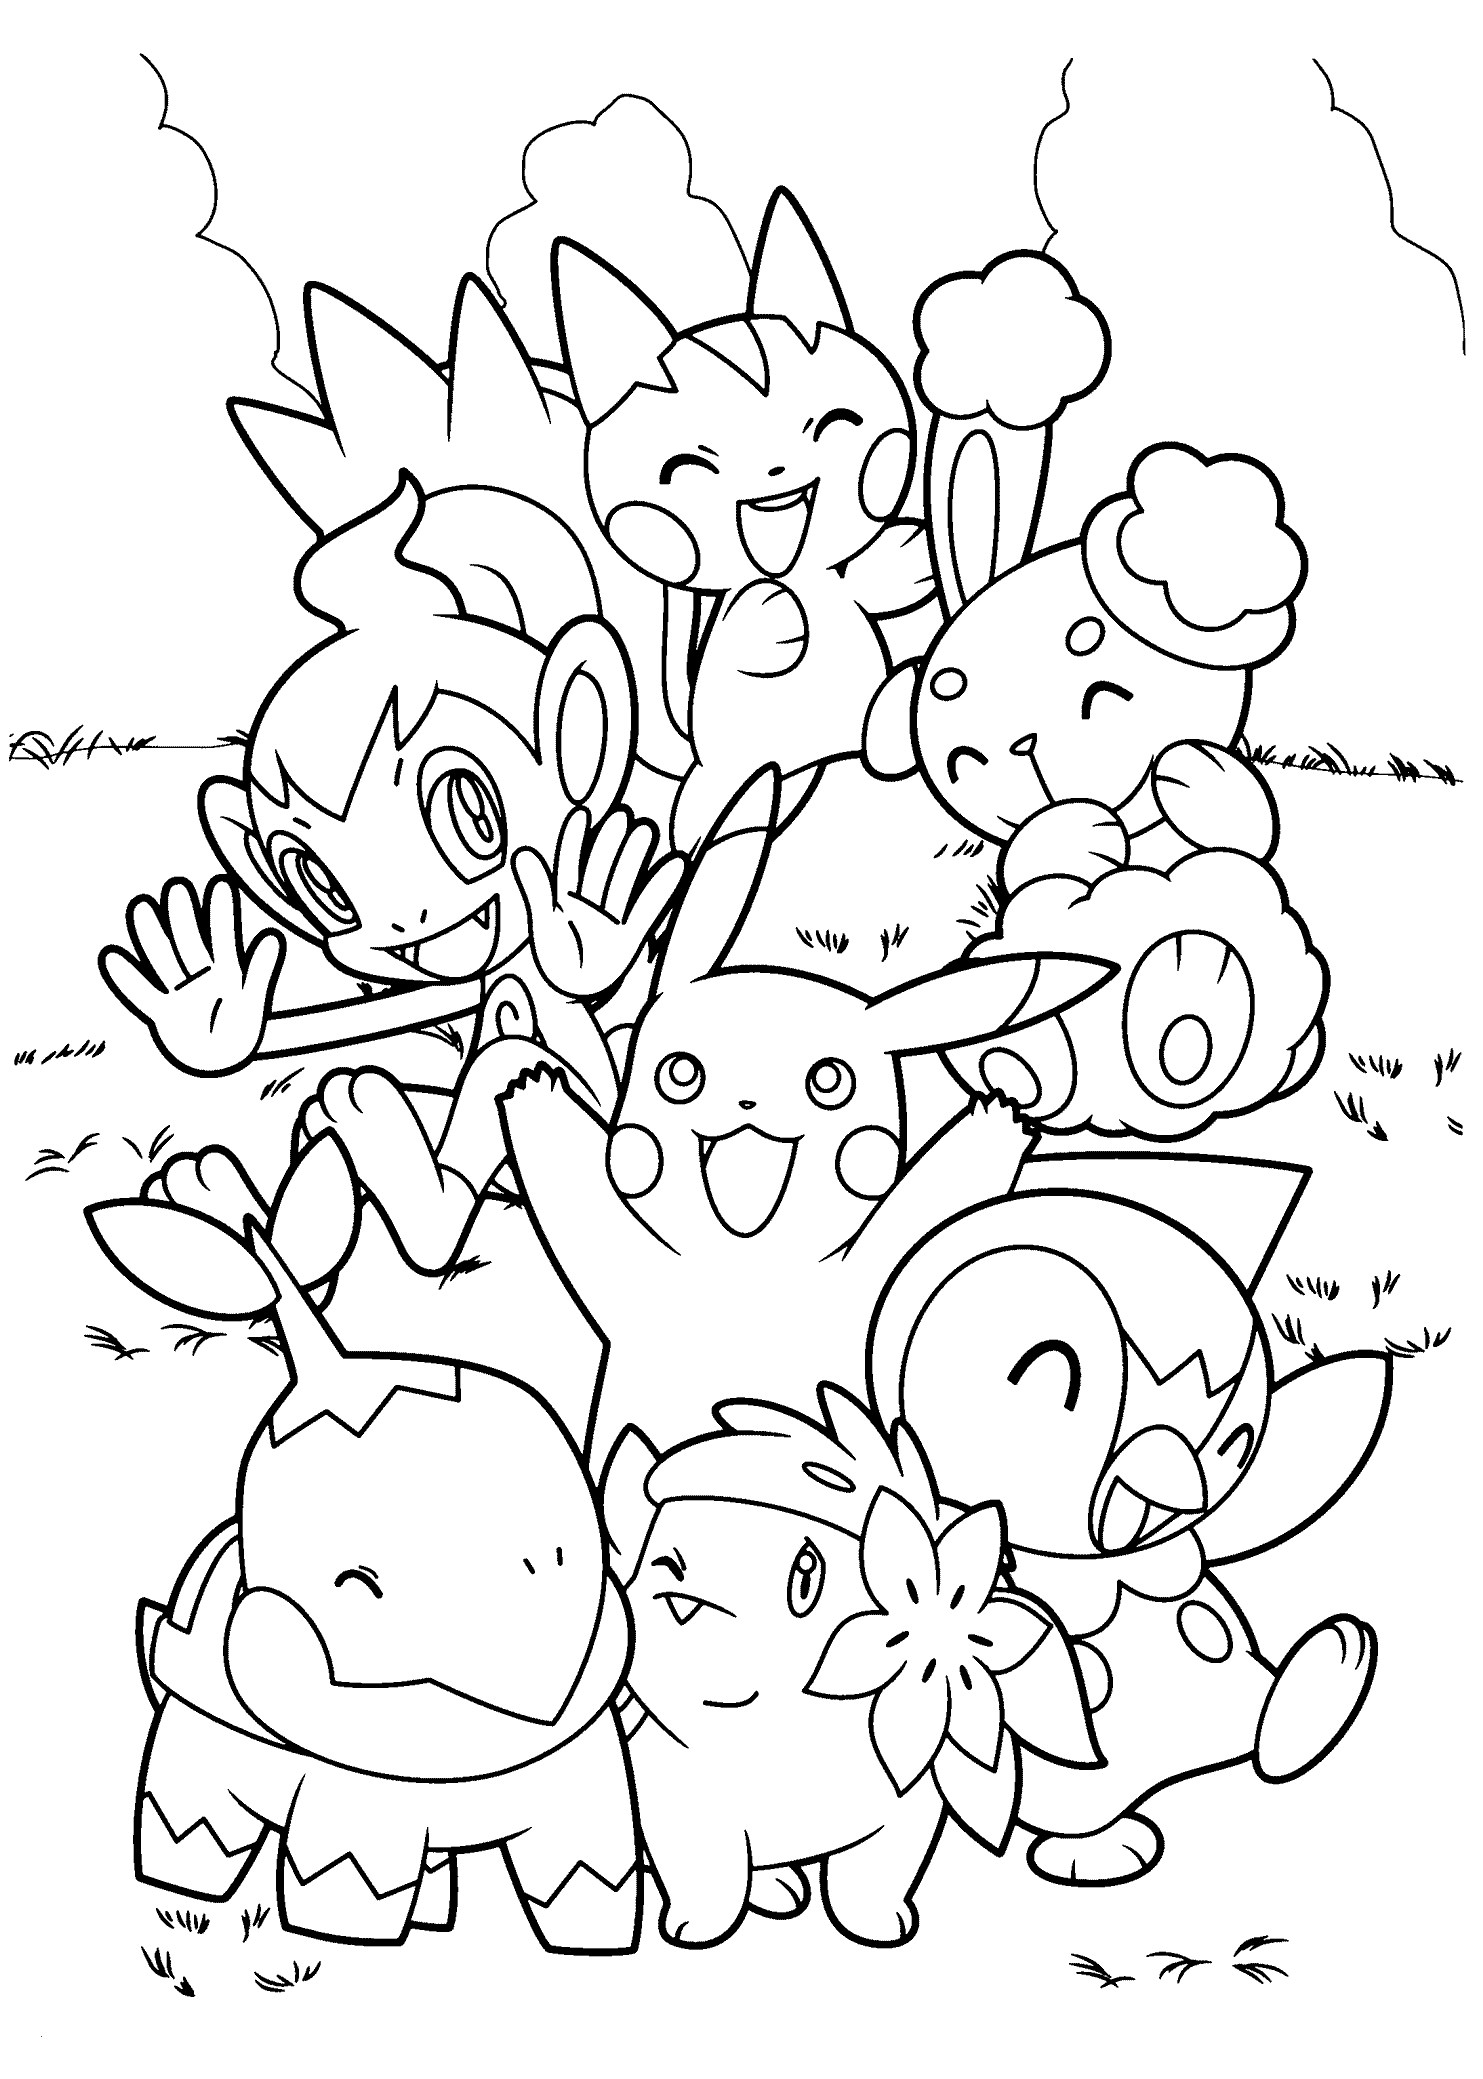 charizard coloring pages to print 29 pokemon coloring pages charizard download coloring sheets coloring to print charizard pages